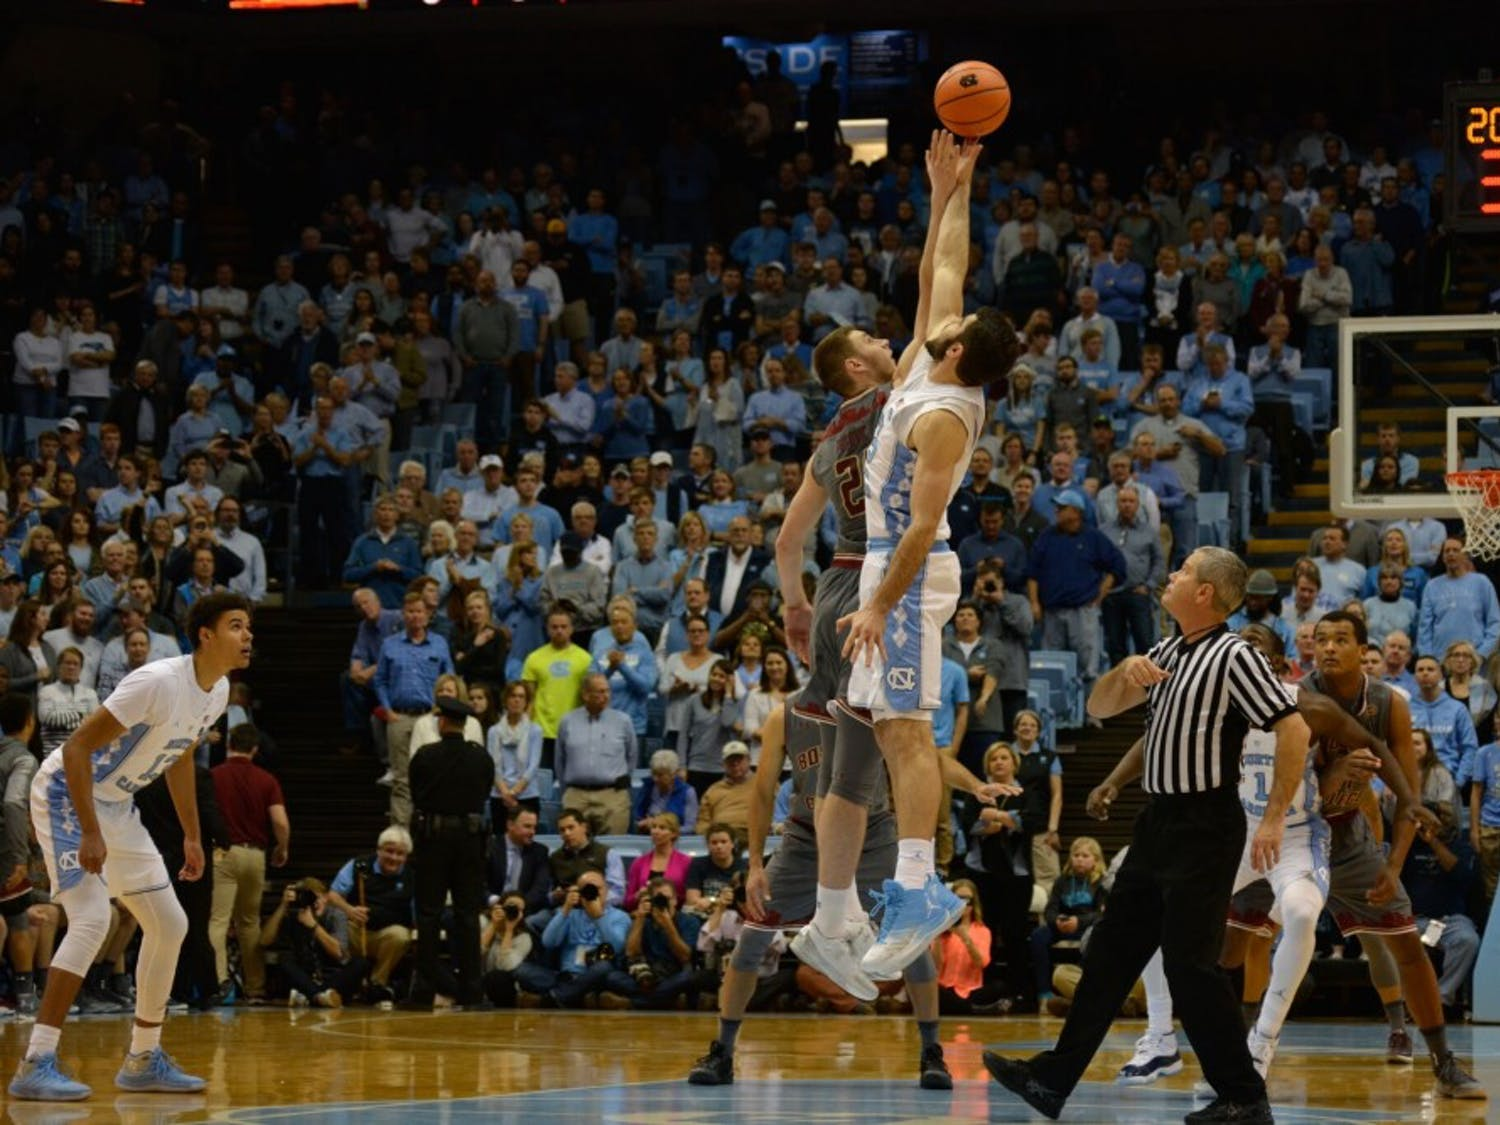 UNC lost two consecutive ACC games before Tuesday night's win at home against Boston College.